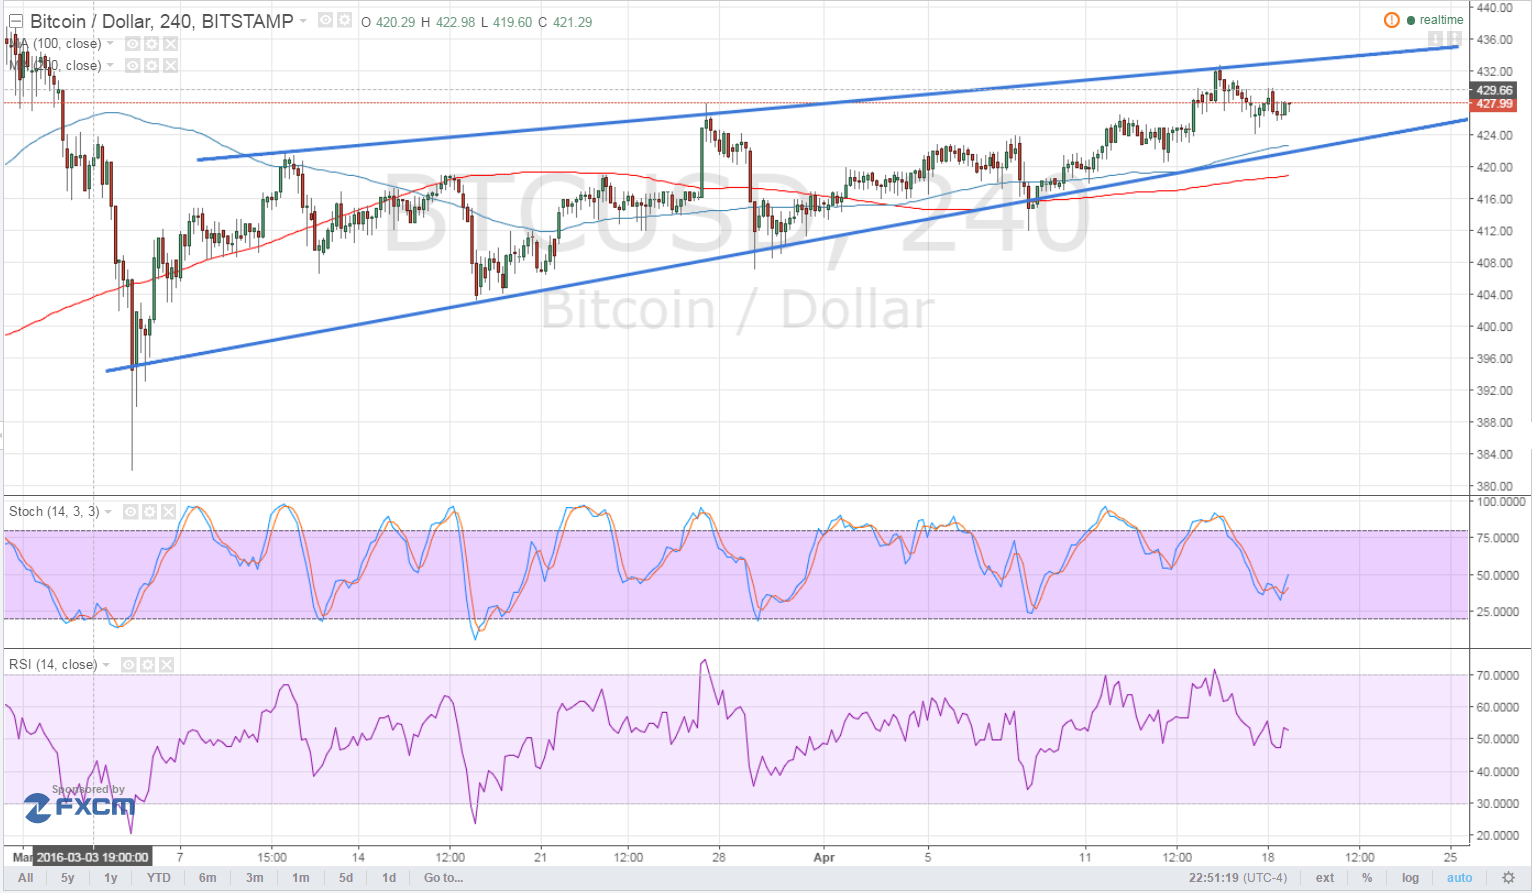 Bitcoin Price Technical Analysis for 04/19/2016 - Still Stuck in a Wedge!